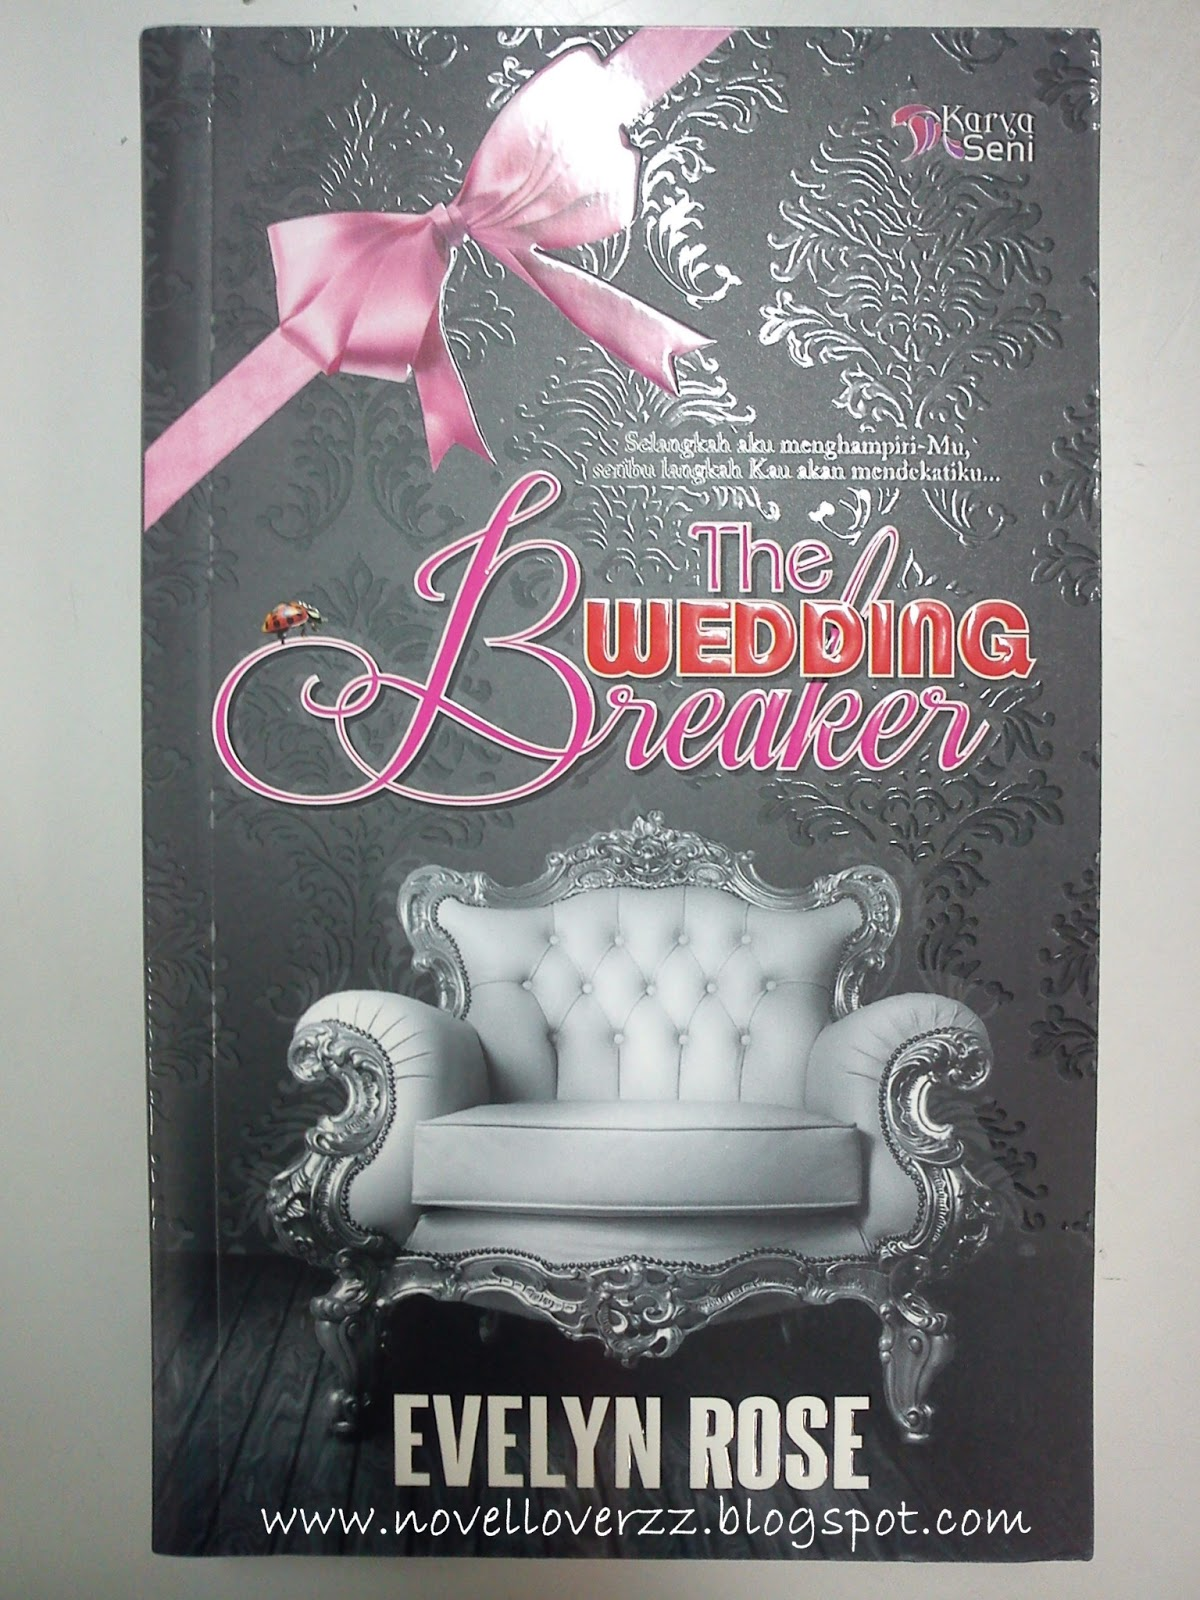 wedding breaker 1200 x 1600 251 kb jpeg the wedding breaker new 1100